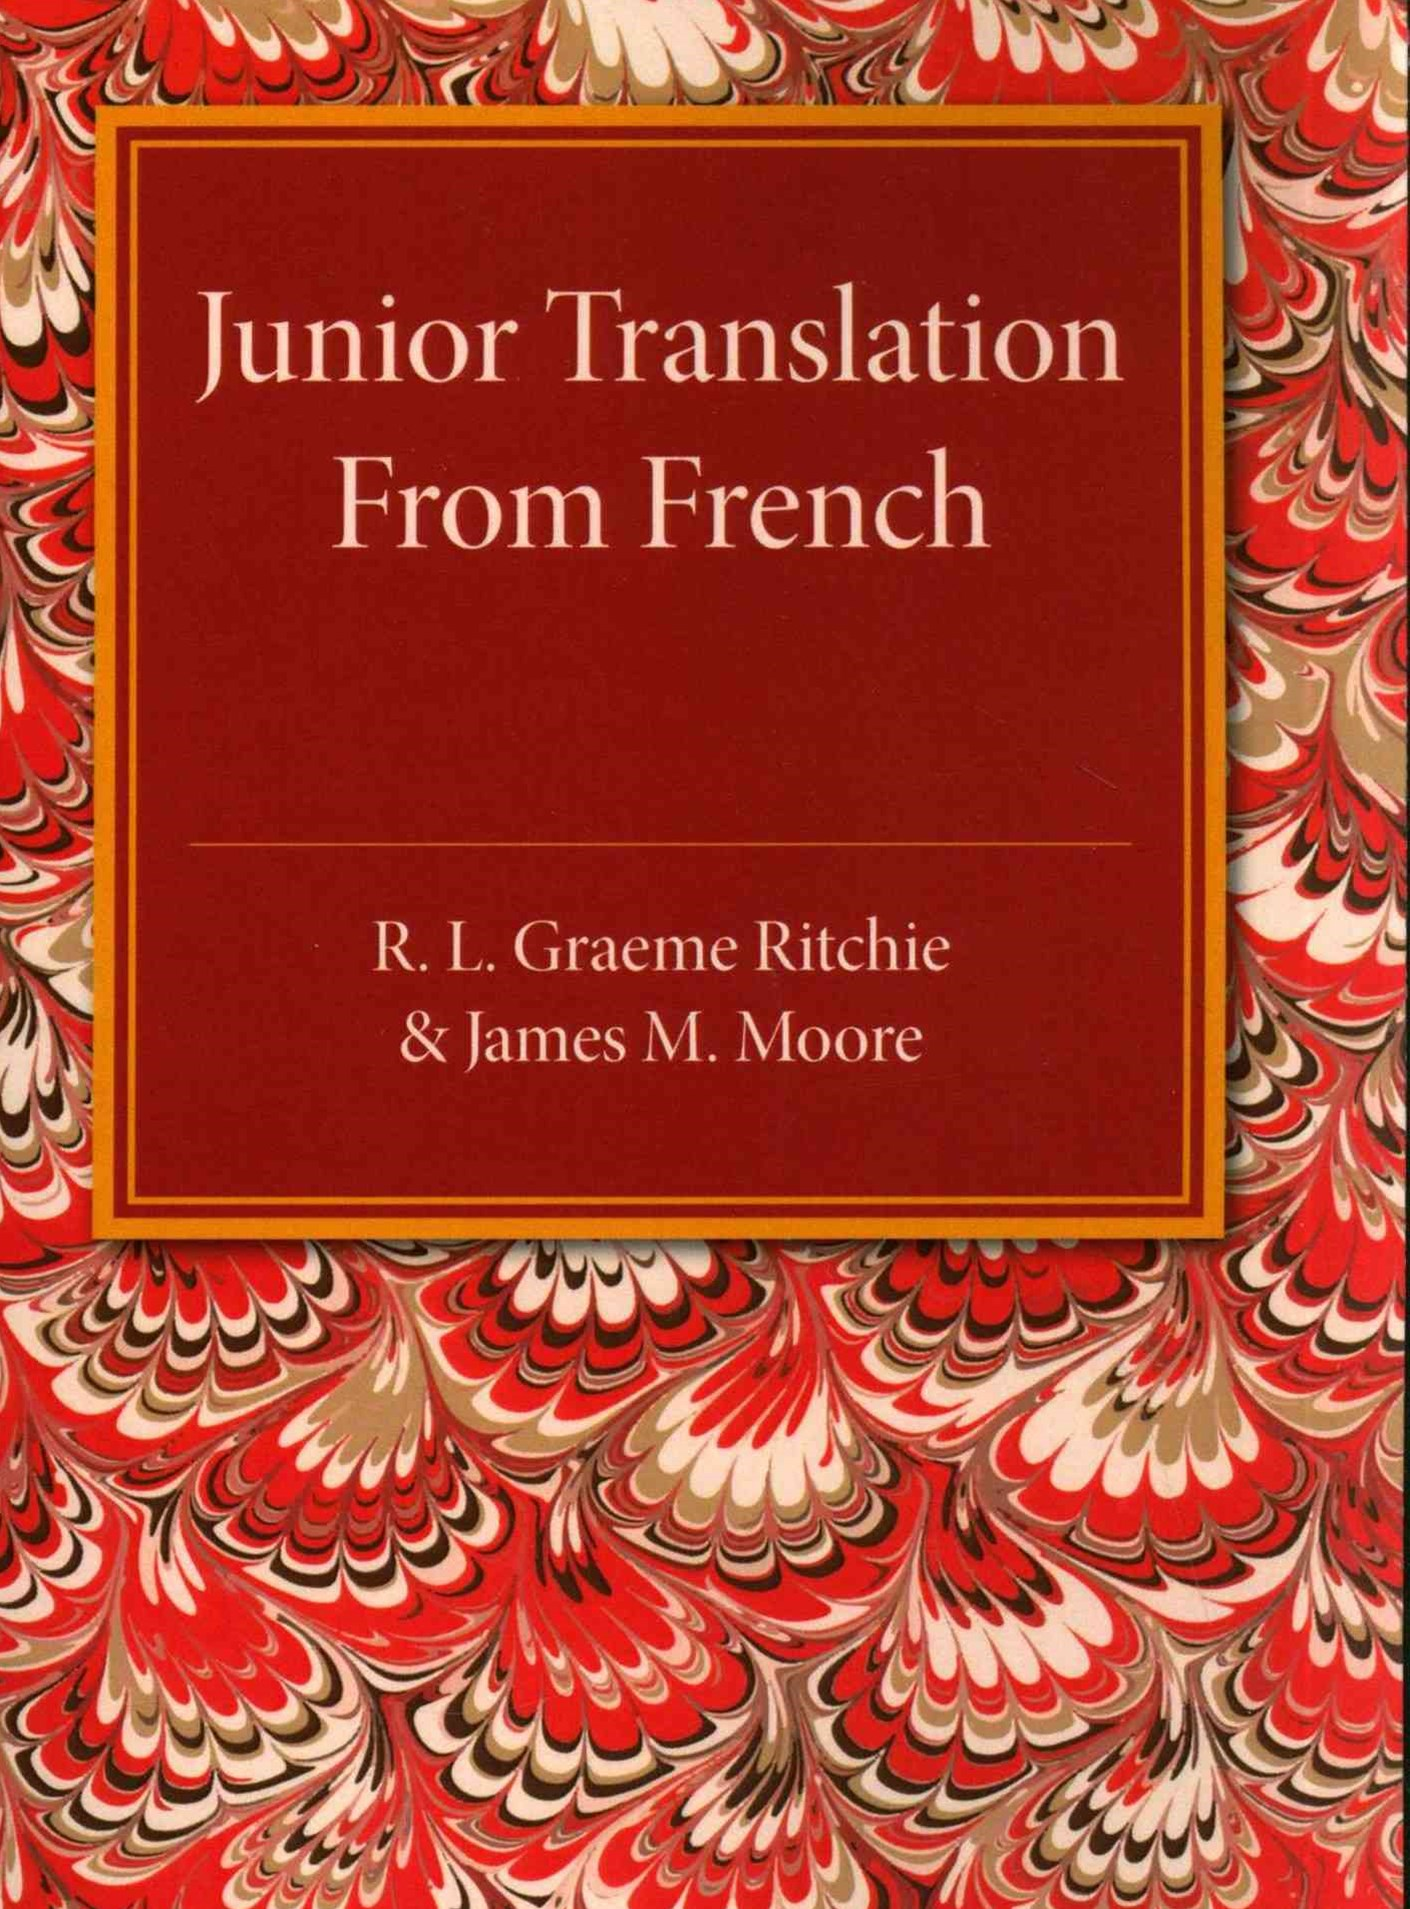 Junior Translation from French